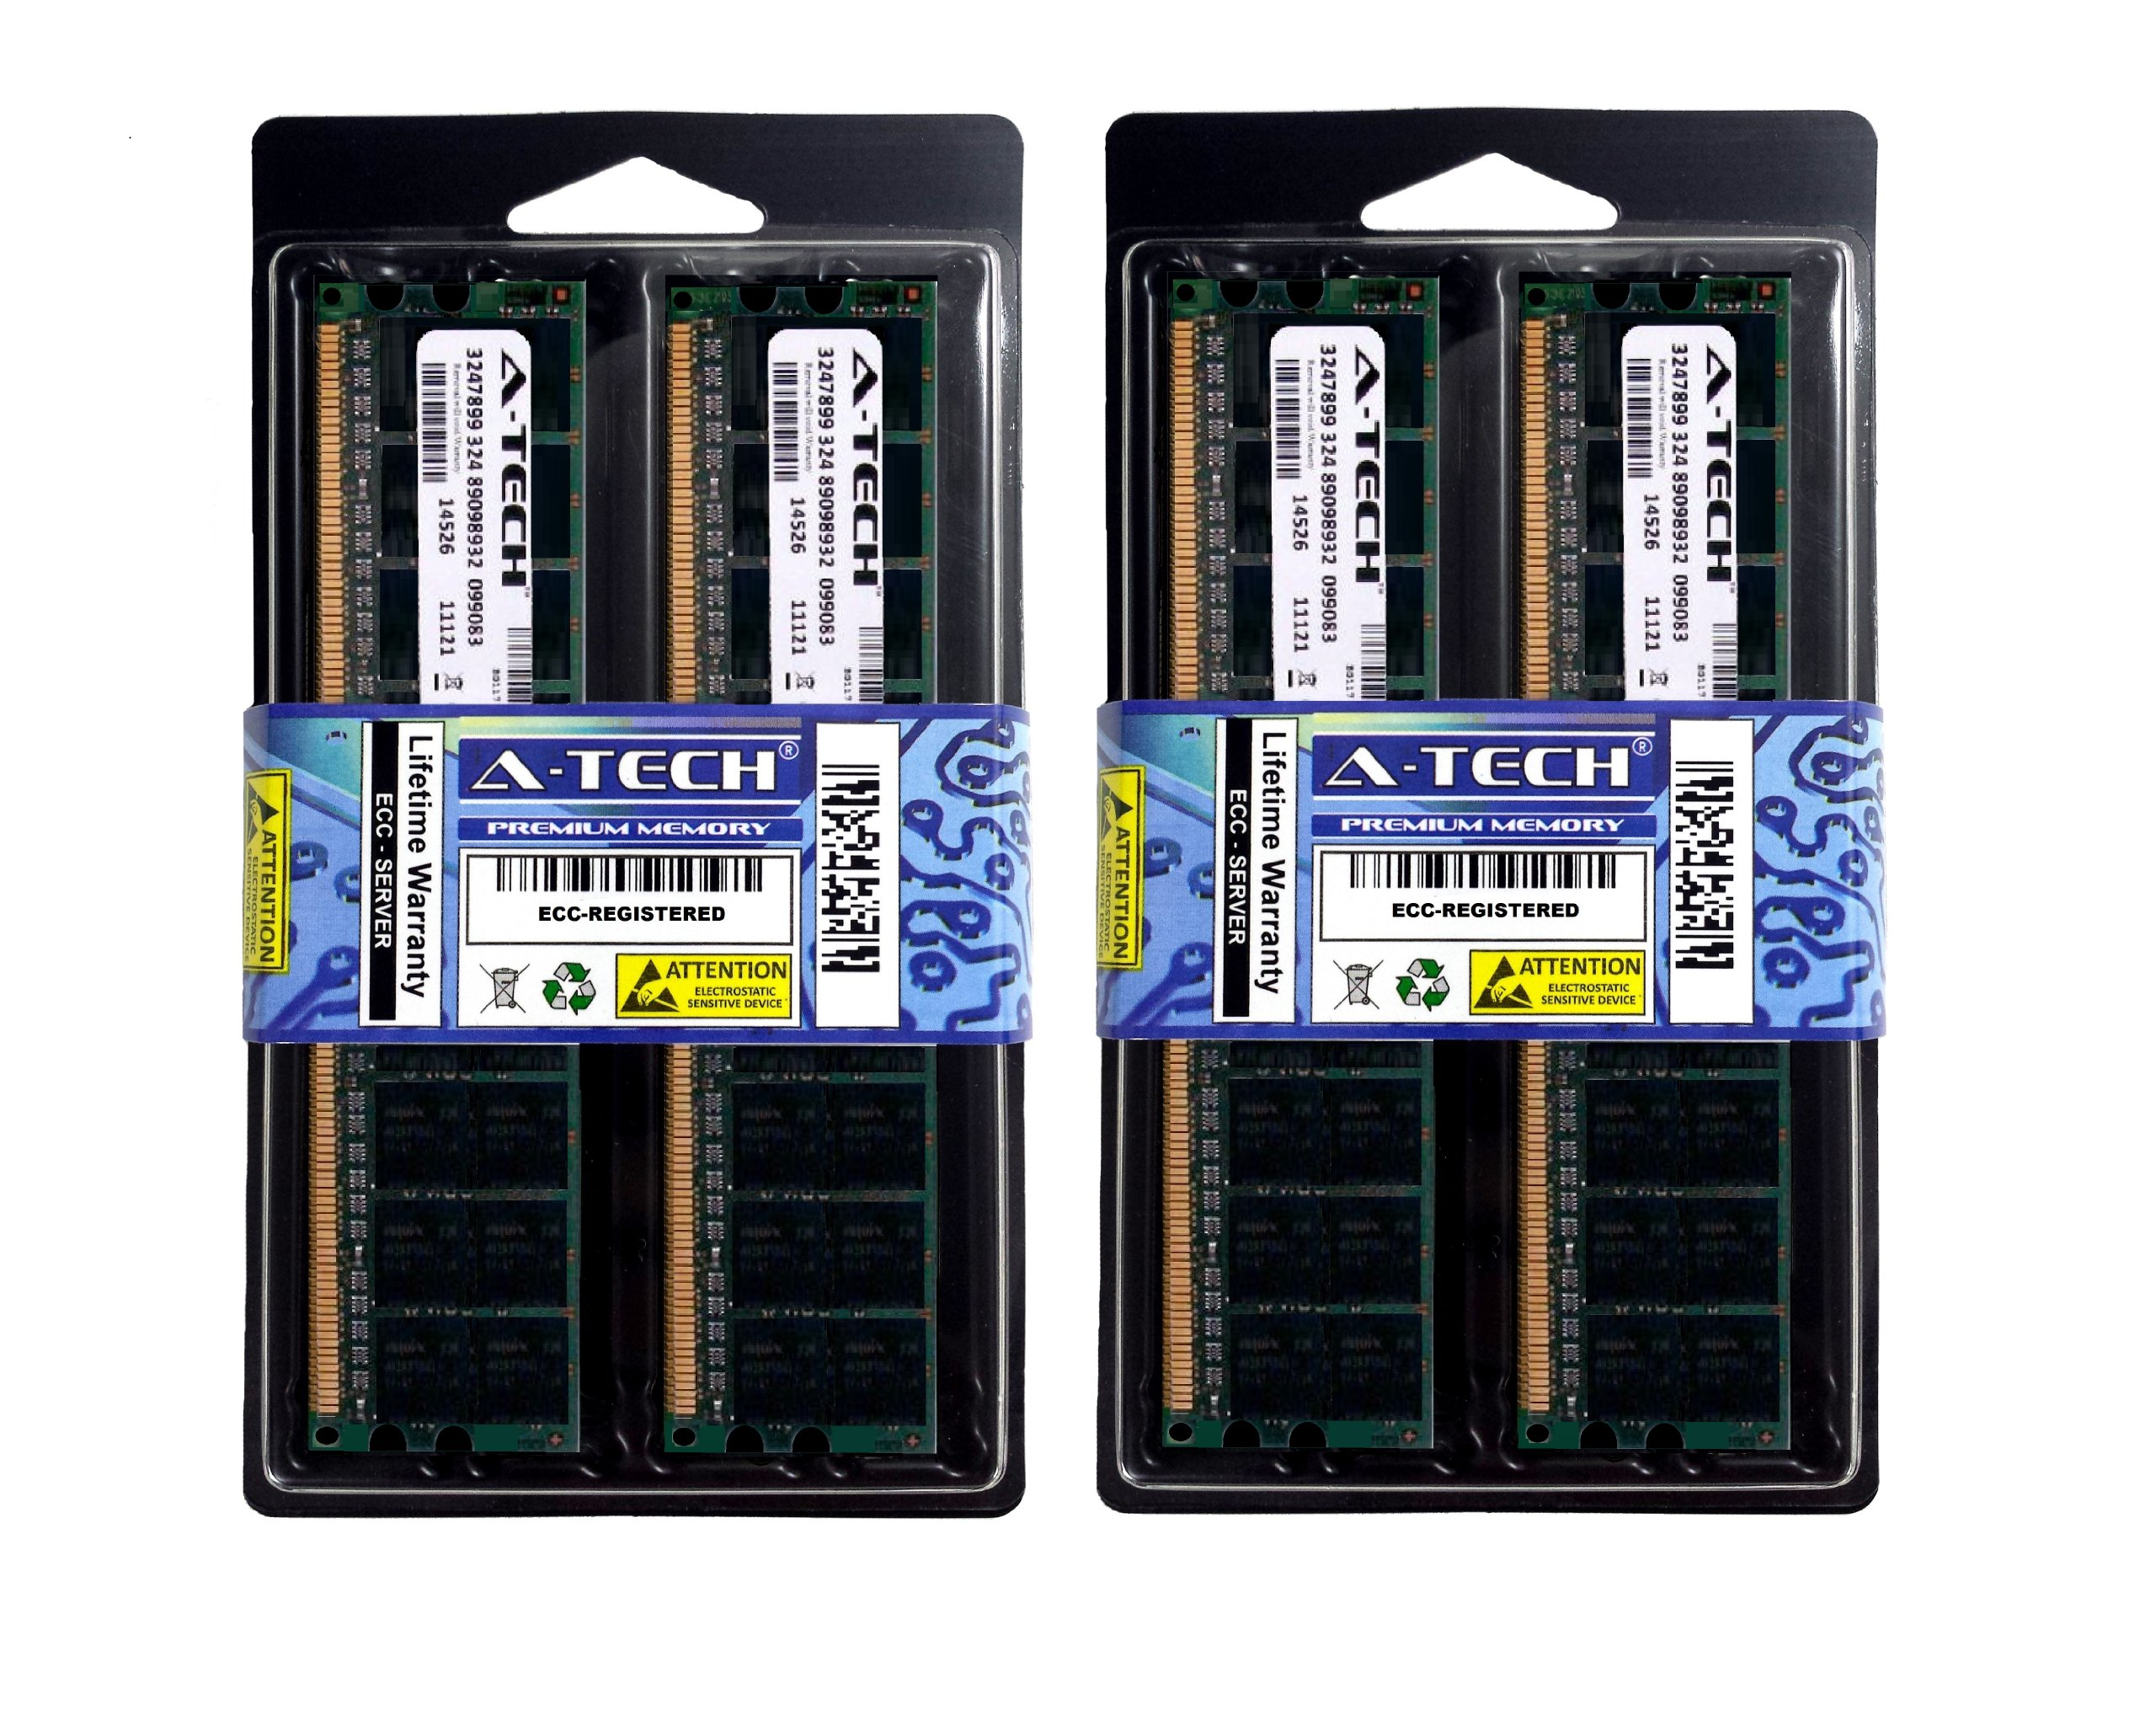 16GB Kit (4x4GB) ECC Registered DDR2 PC2-5300 (667 Mhz) Memory RAM For Hewlett Packard Compaq Servers and Workstations. Designed for the HP Compaq Proliant BL25p G2, Proliant BL465c G6 (DDR2-667MHz), Proliant BL495c G5 (DDR2-667MHz), Workstation xw9400, P